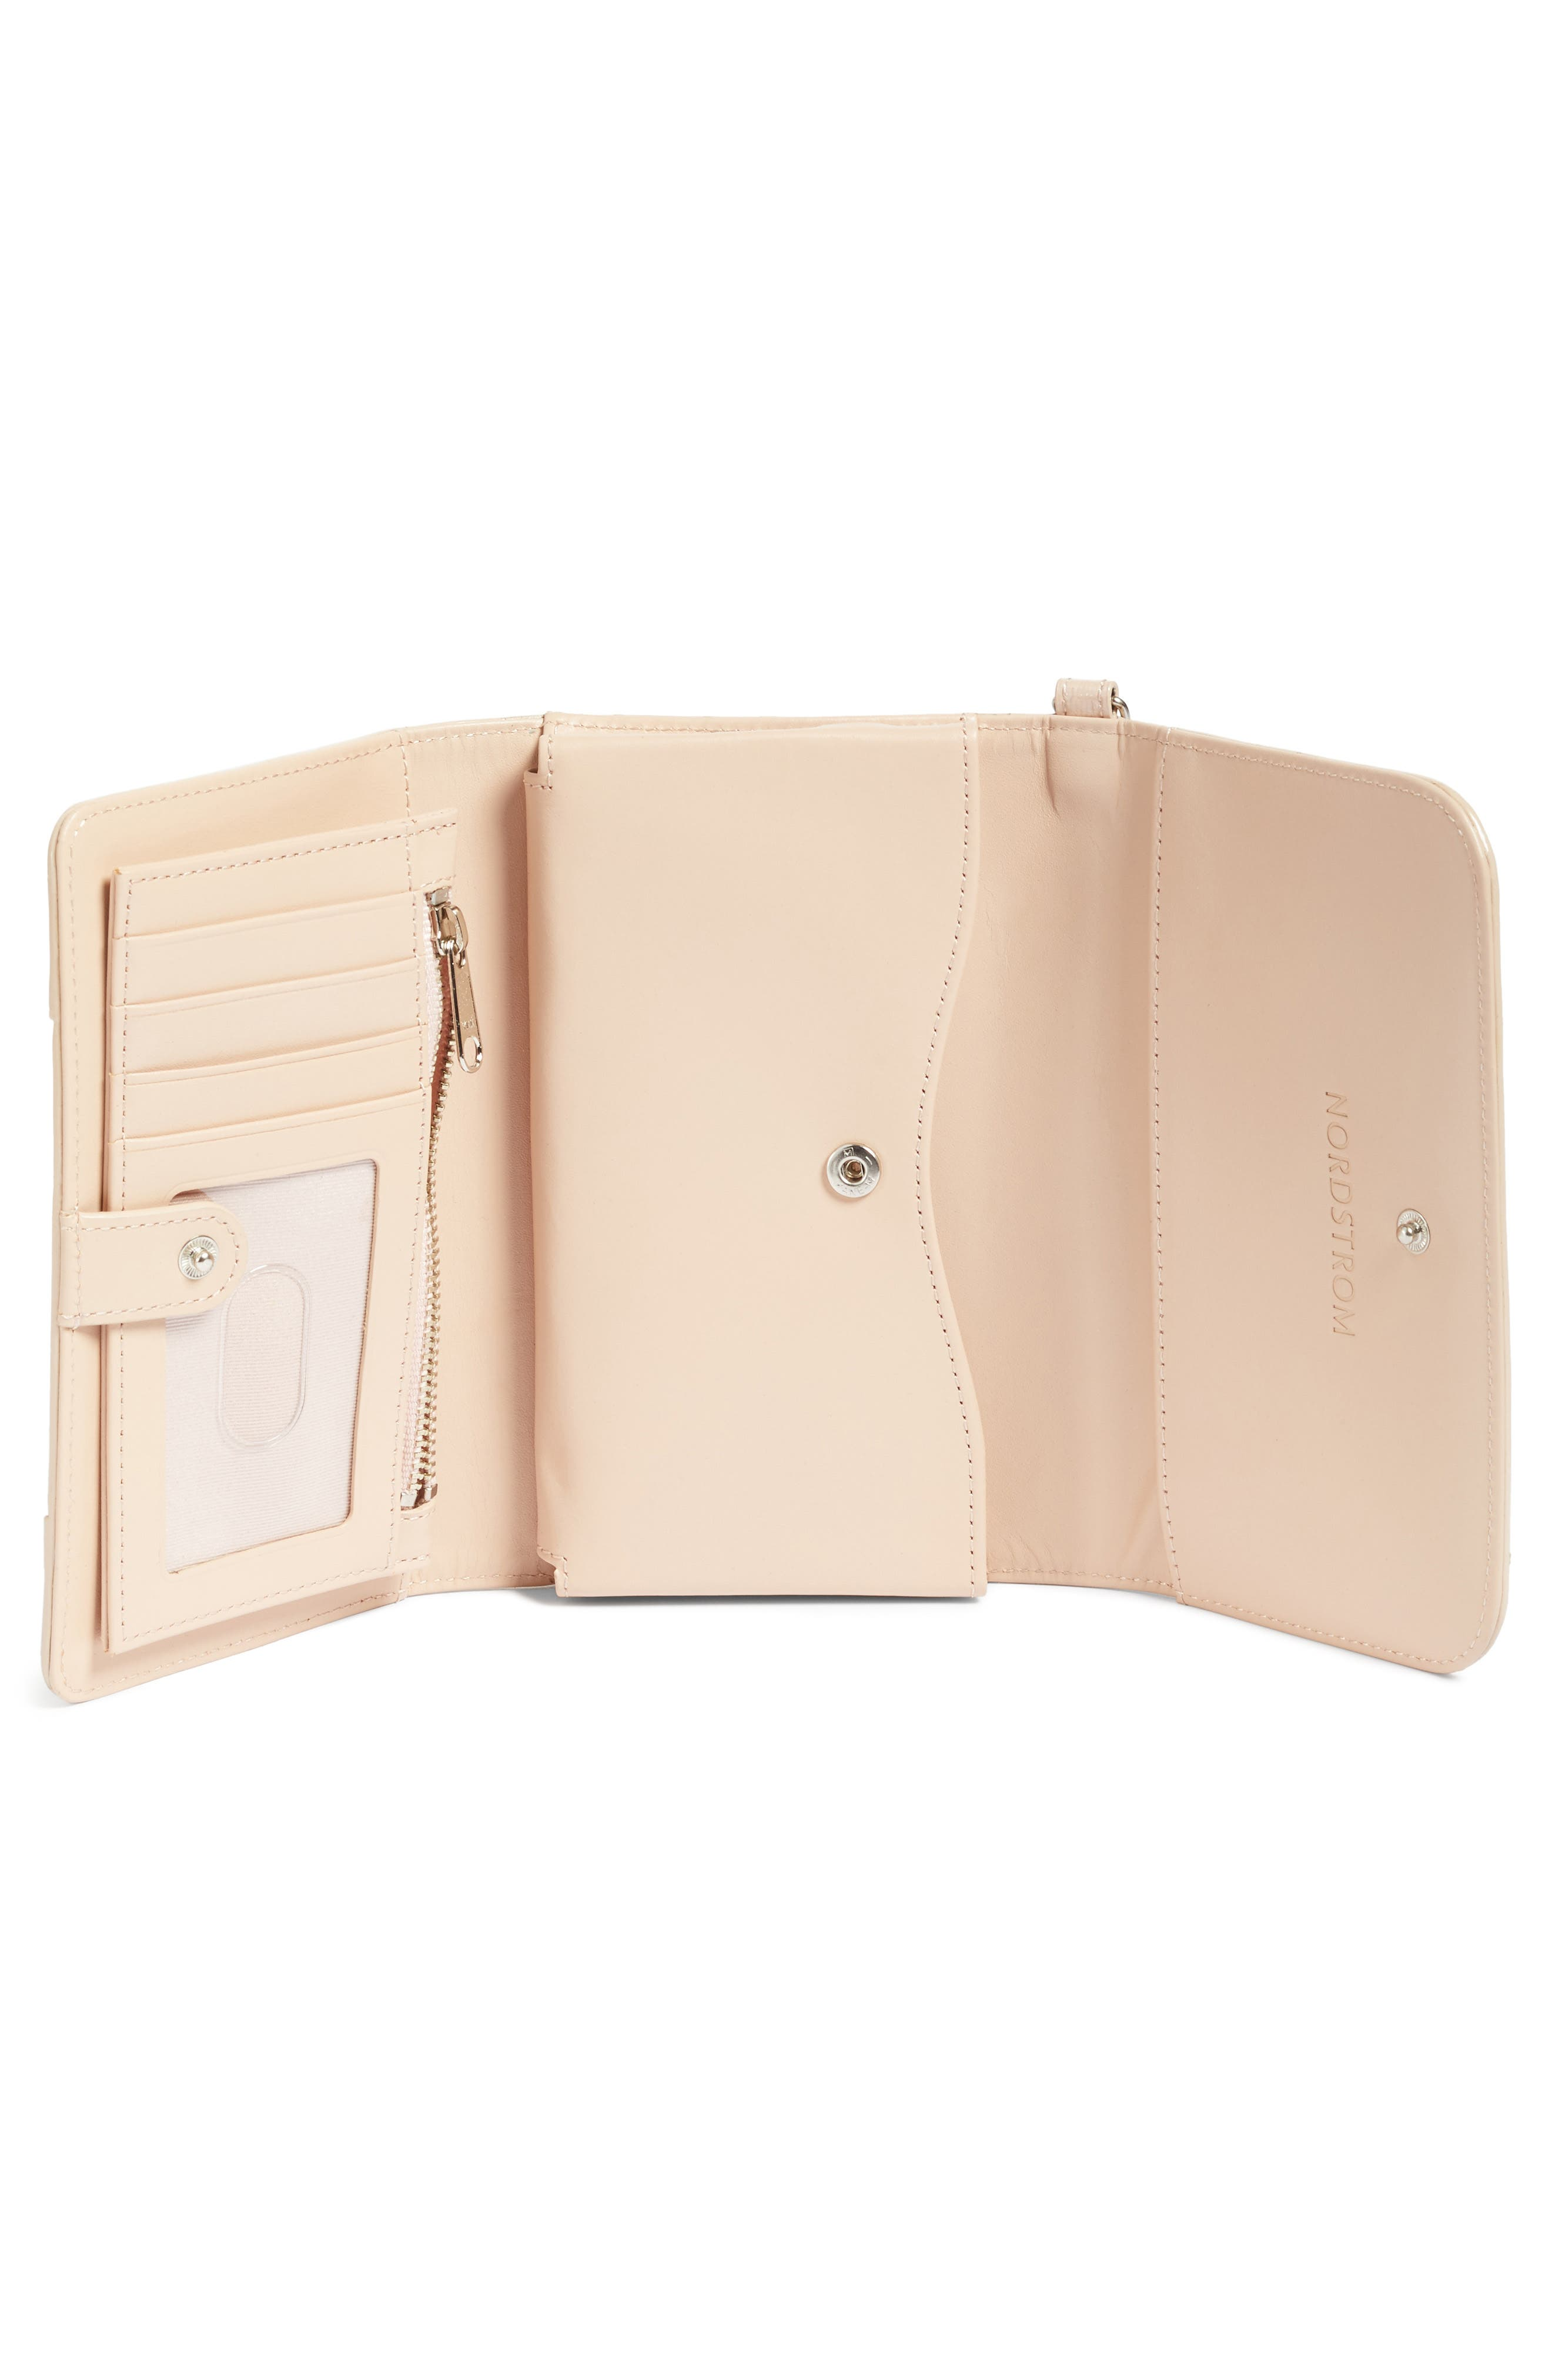 Trifold Leather Wallet,                             Alternate thumbnail 12, color,